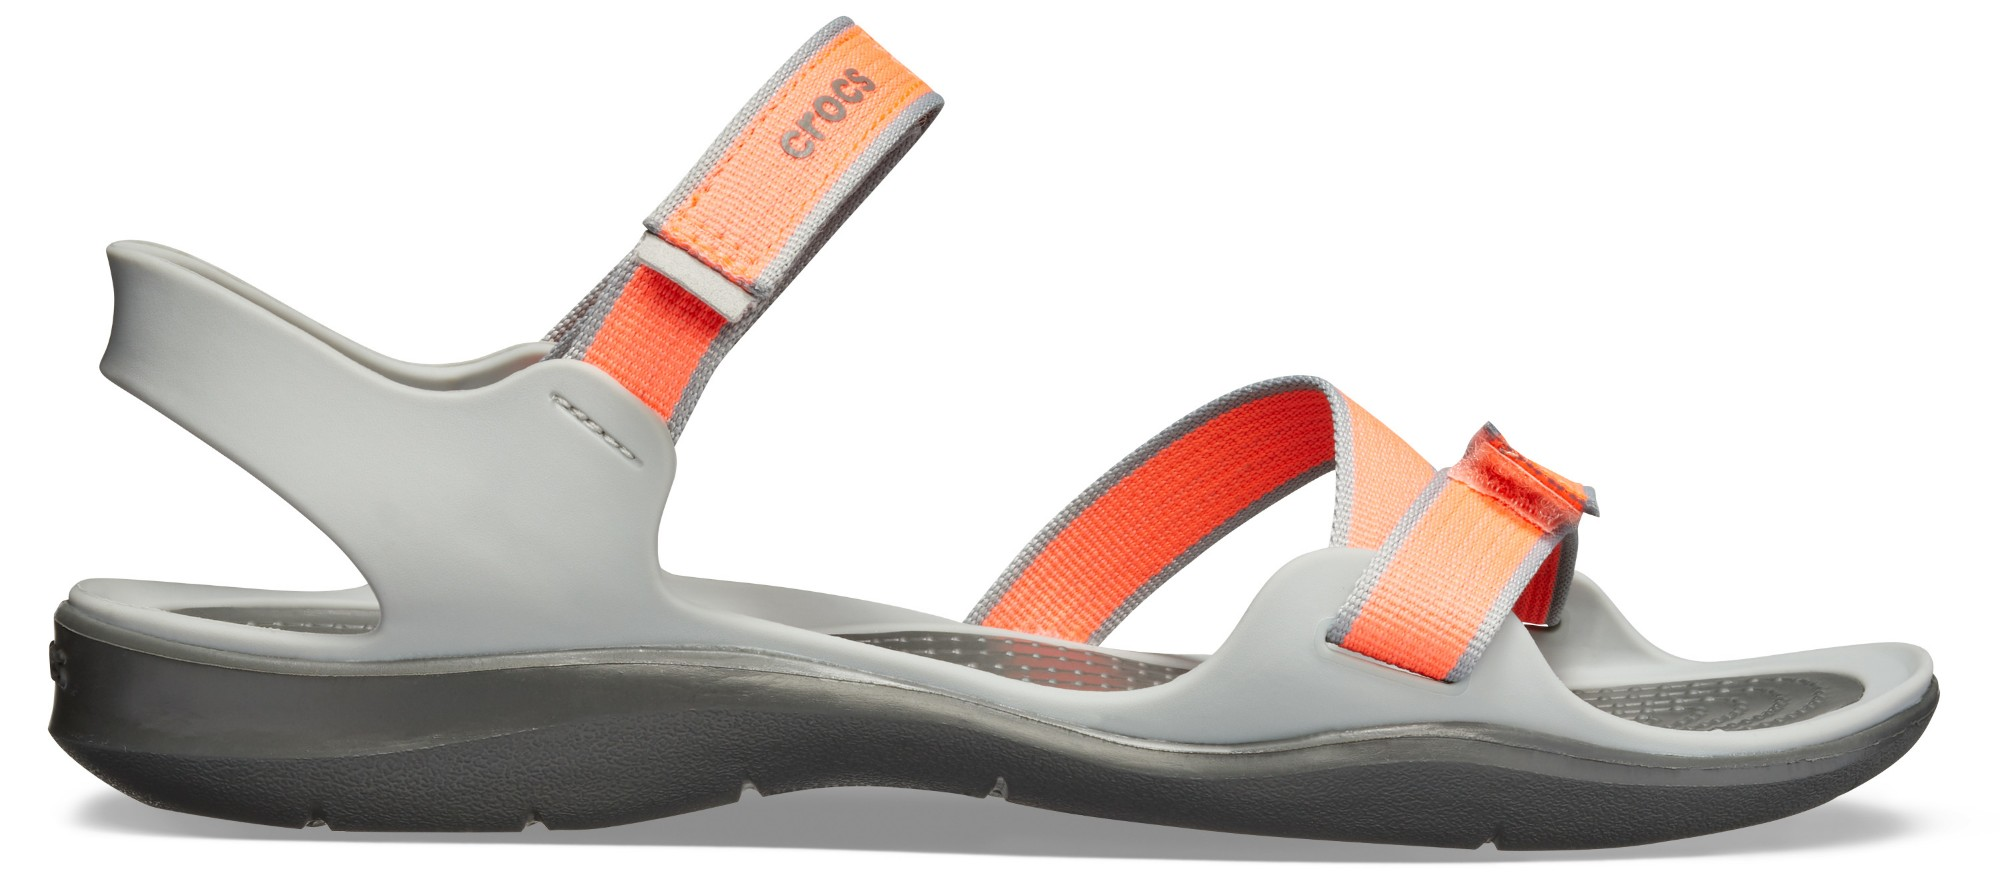 Crocs™ Women's Swiftwater Webbing Sandal Bright Coral/Light Grey 37,5